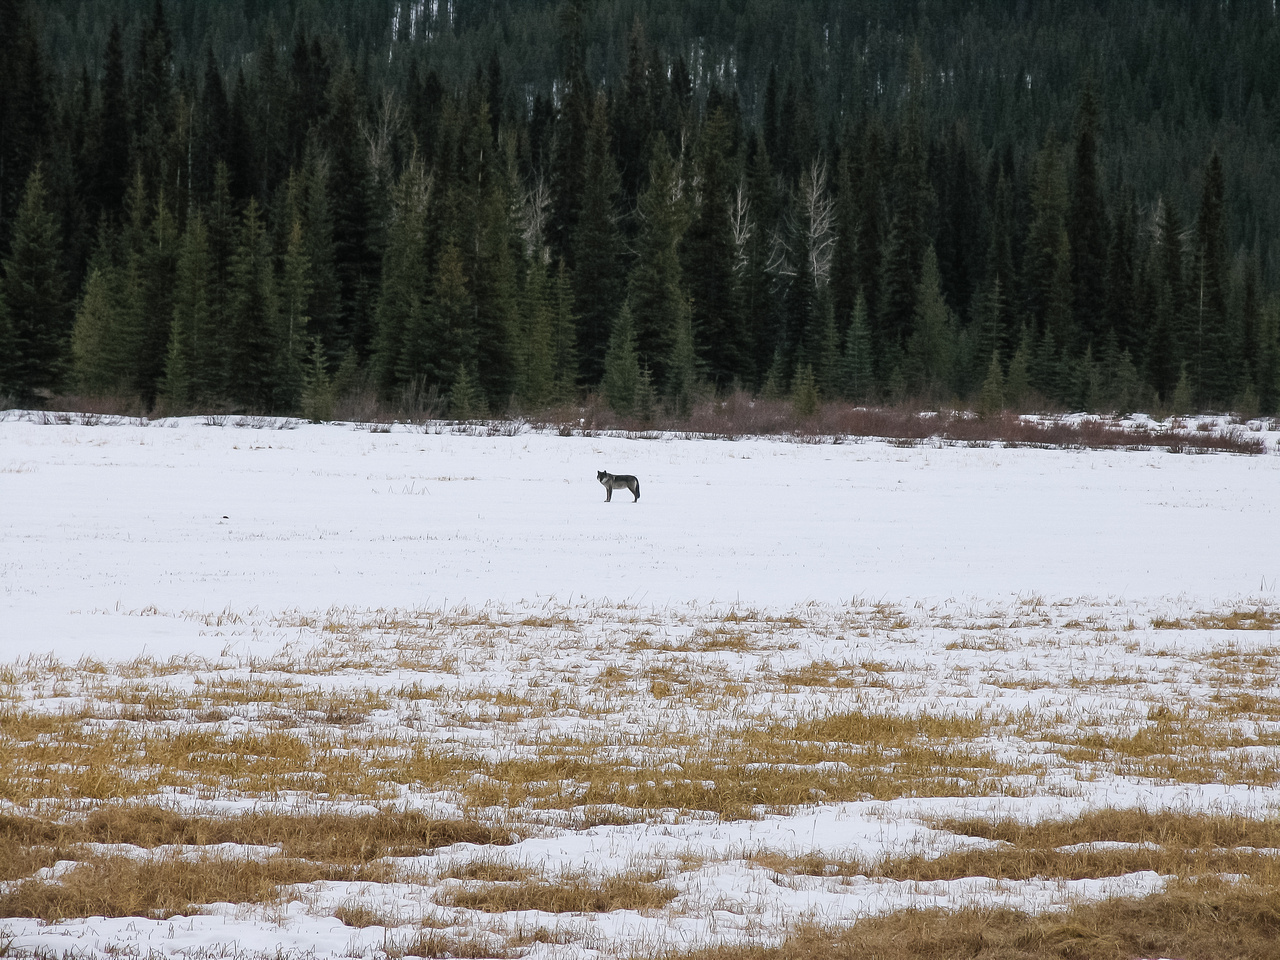 This is the first wolf I've seen in the wild. The funny part is he just laid down and looked at us after we stopped along hwy 93 to look at him.